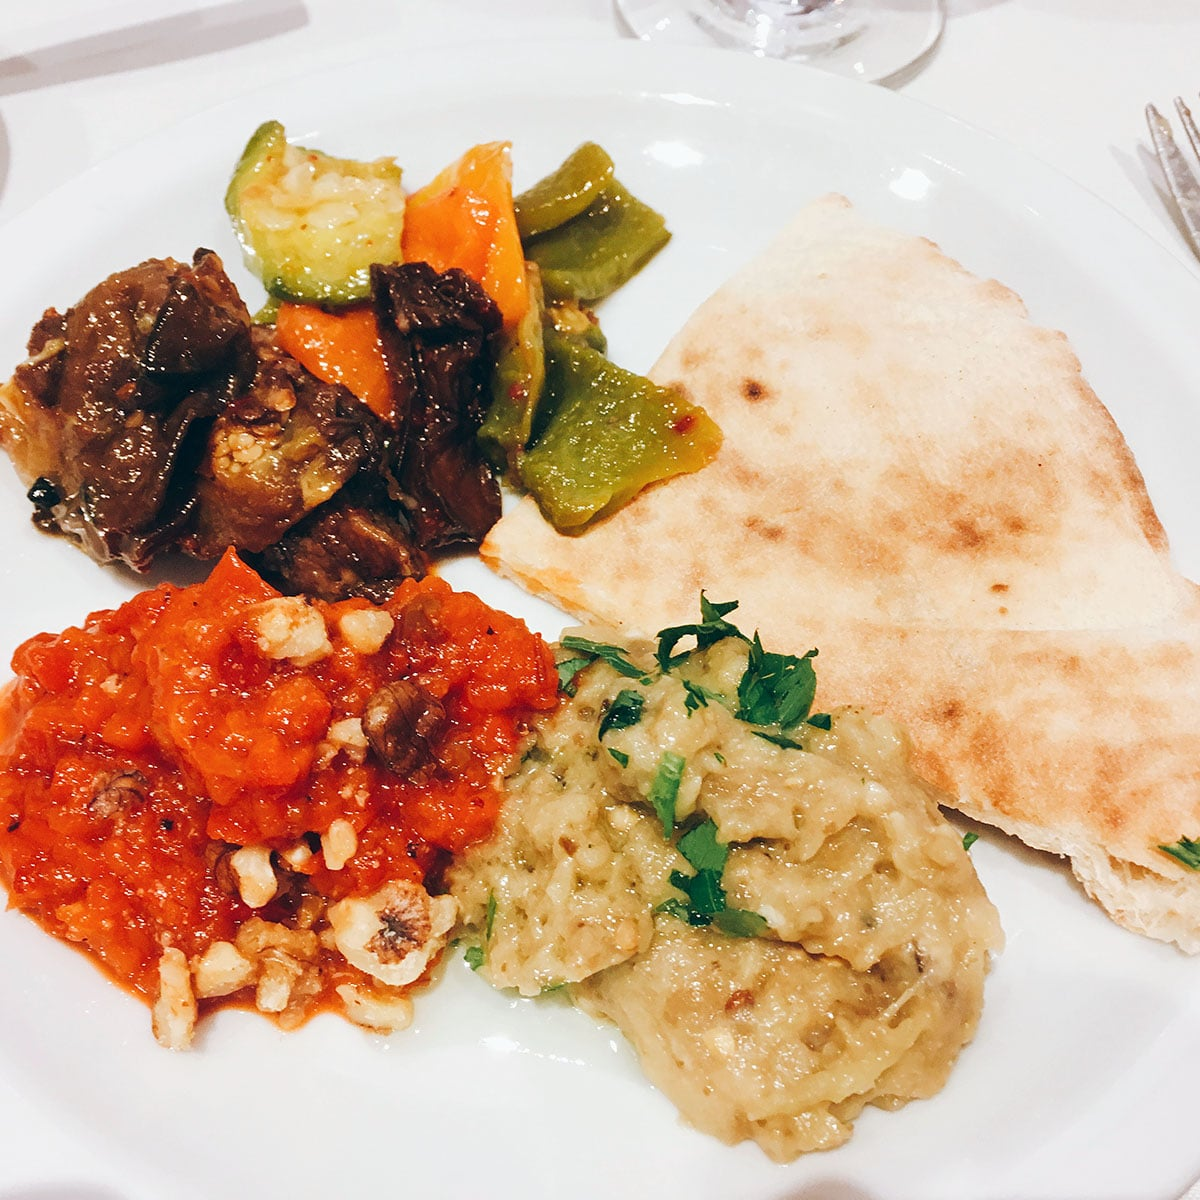 mezze dishes in Sarkis, Buenos Aires